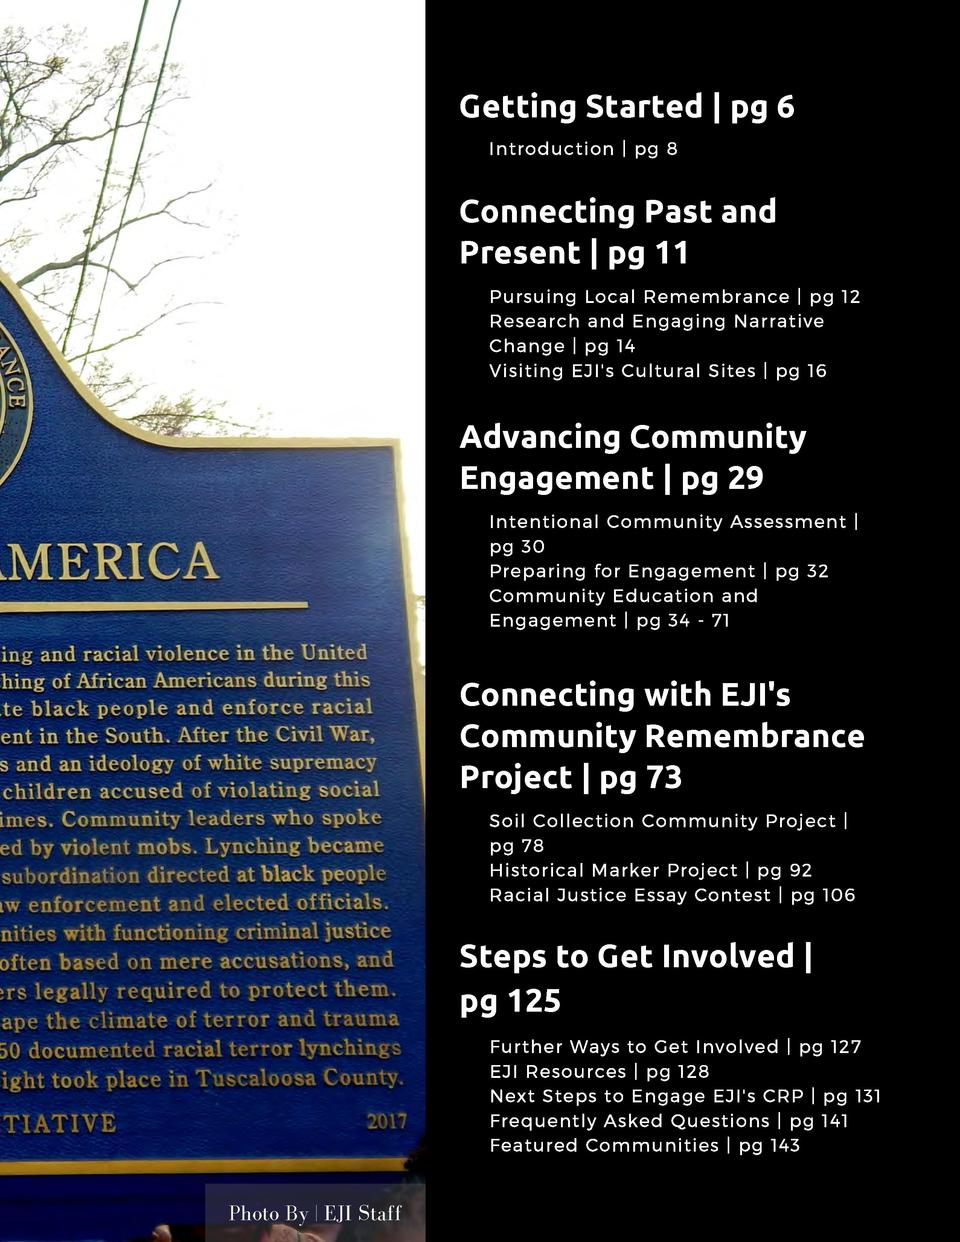 Getting Started   pg 6 Introduction   pg 8  Connecting Past and Present   pg 11 Pursuing Local Remembrance   pg 12 Researc...